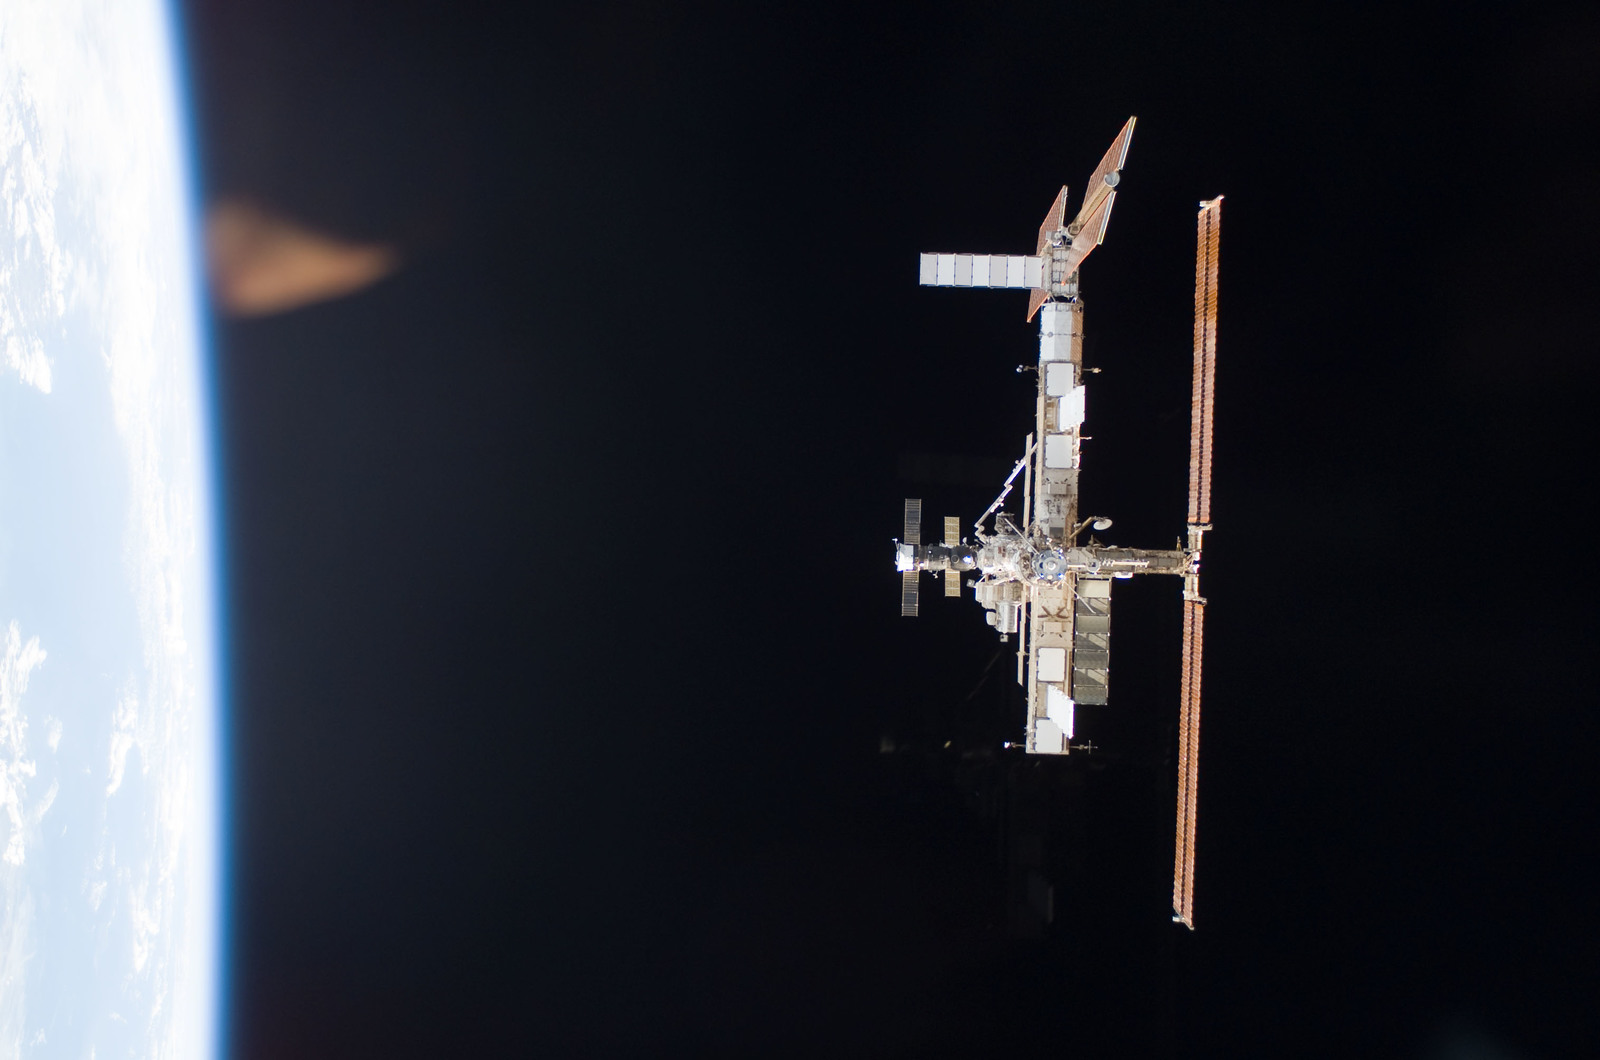 S115E06703 - STS-115 - Overall exterior view of the ISS during undocking and Flyaround Operations for STS-115 Space Shuttle Atlantis